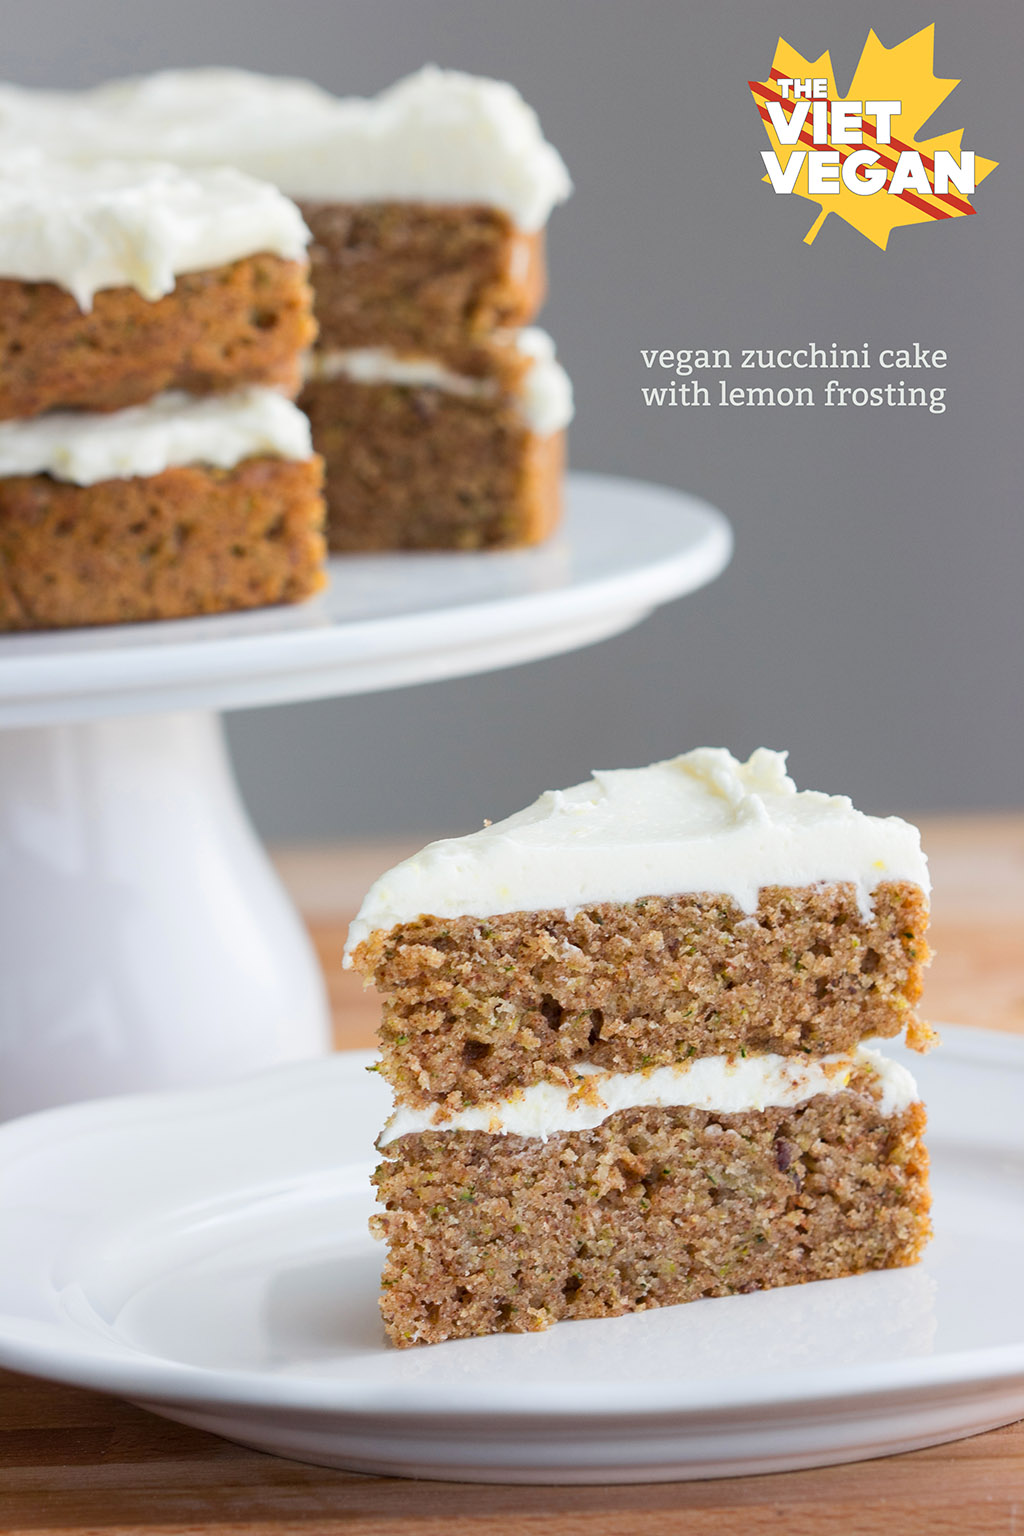 Vegan Zucchini Cake with Lemon Frosting - The Viet Vegan